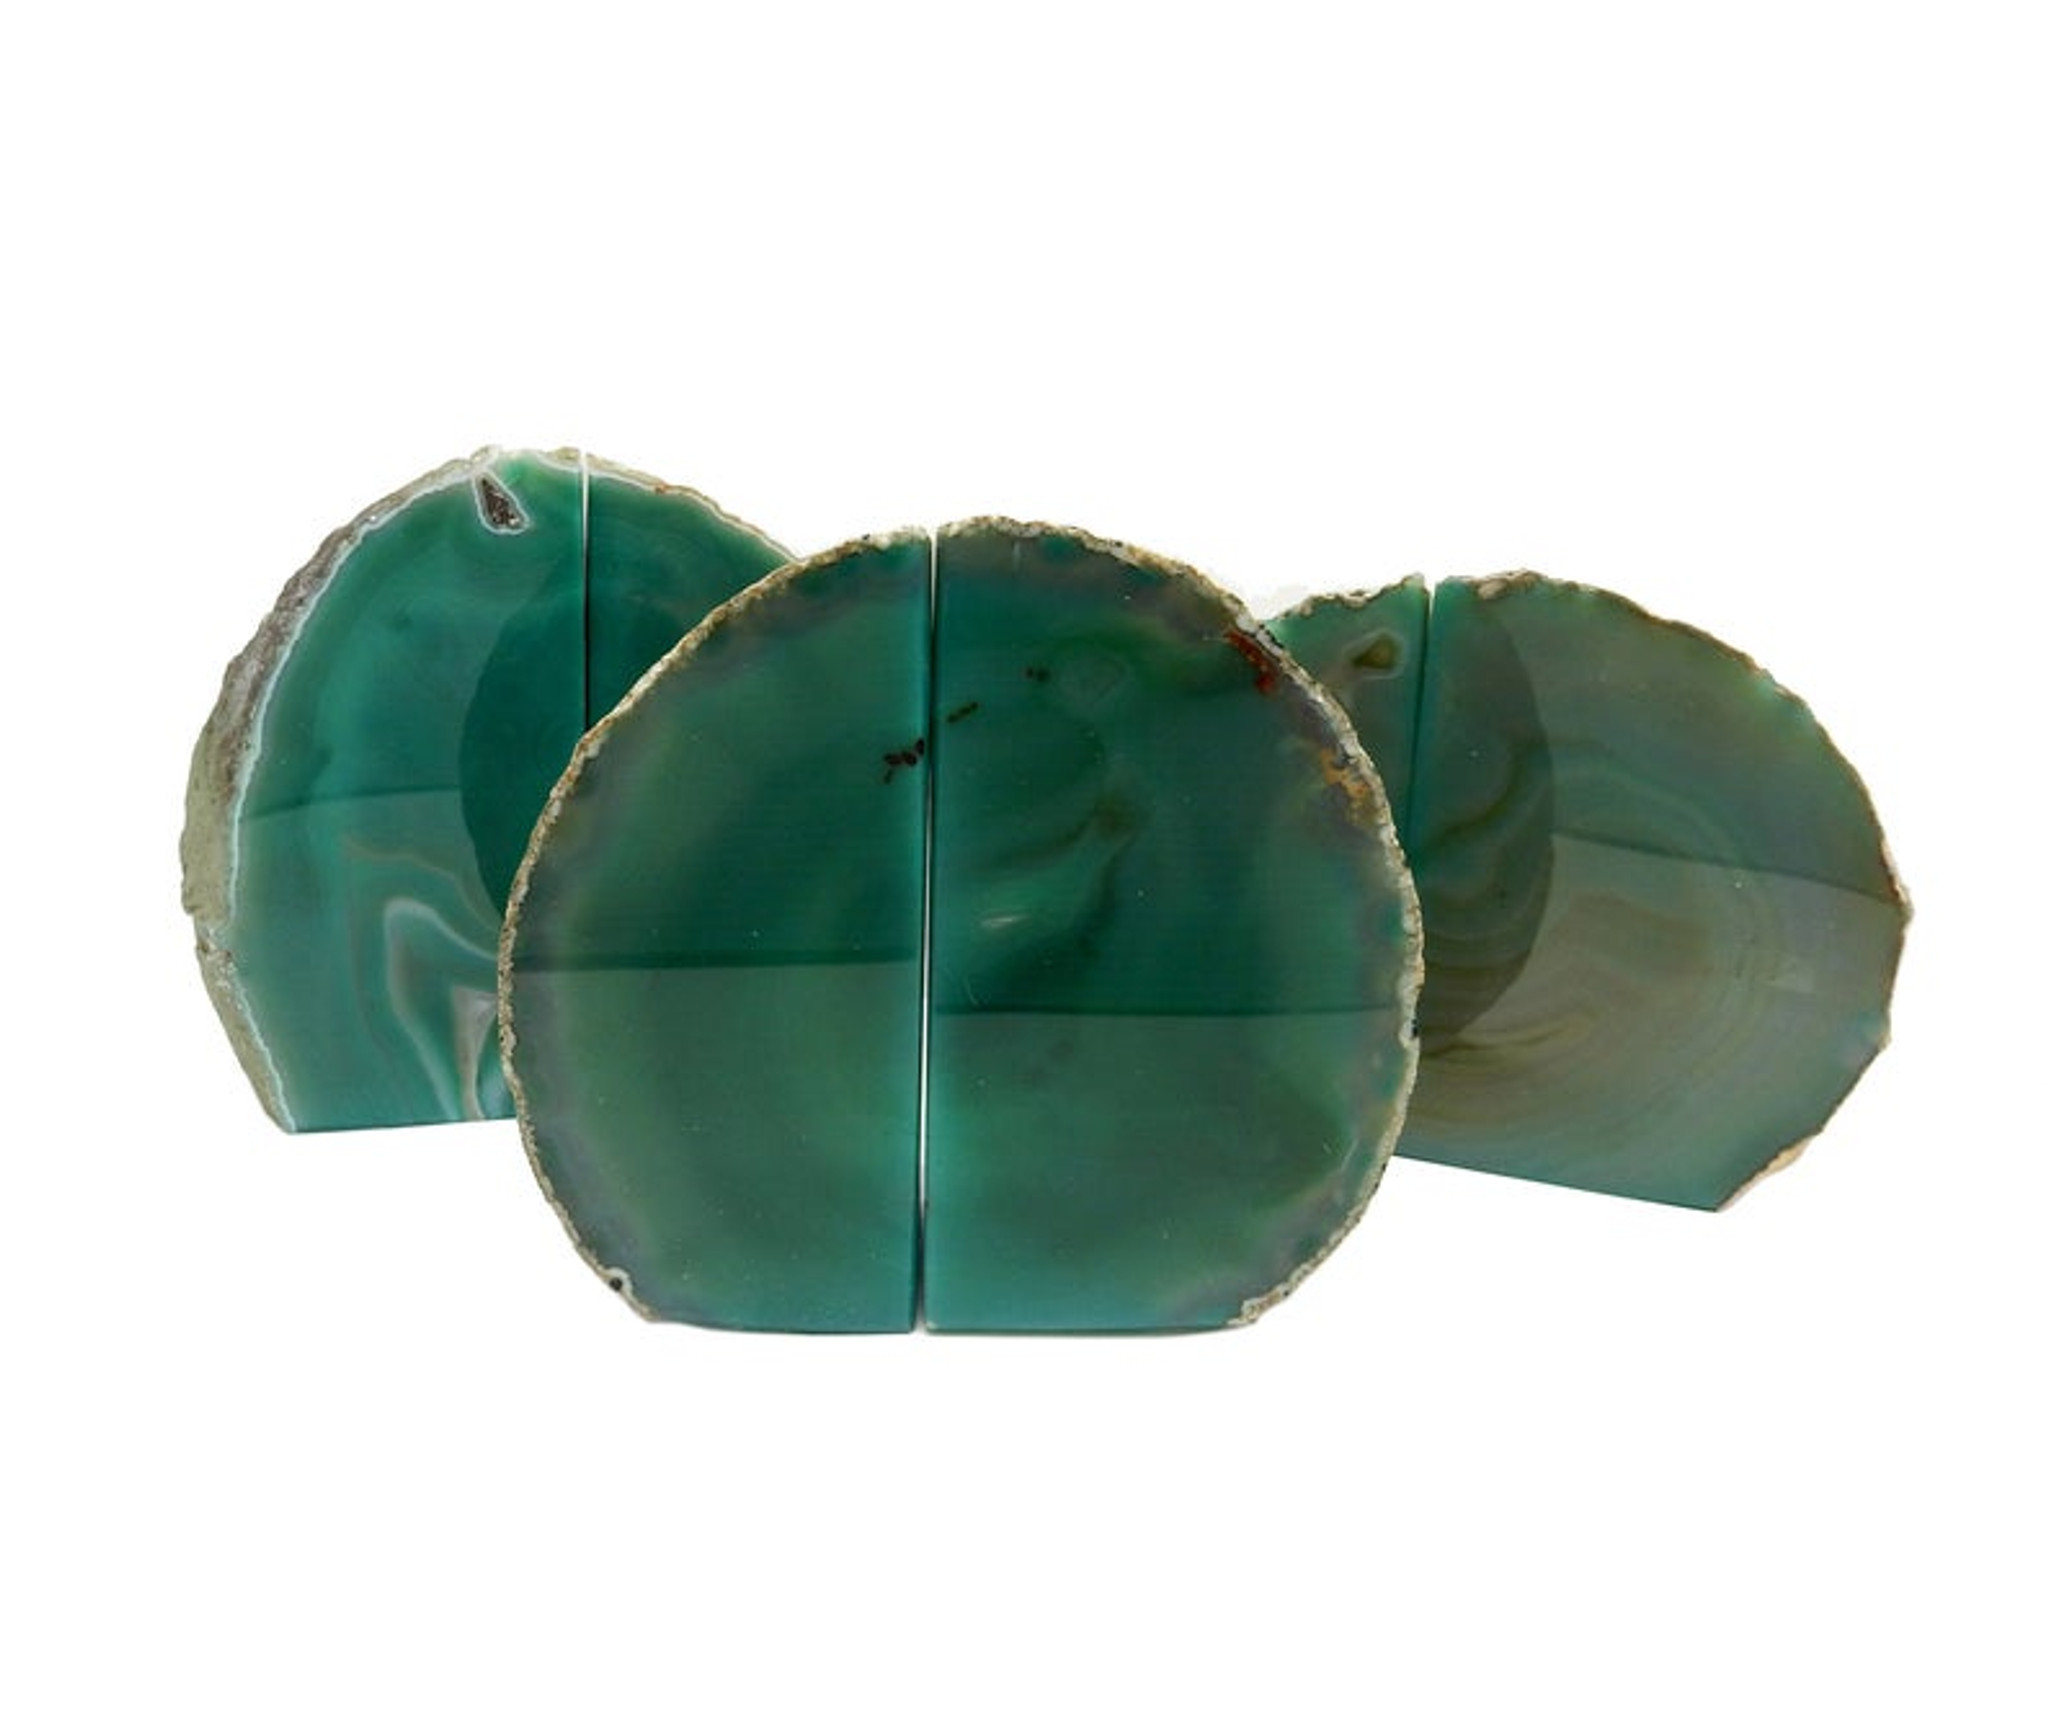 Green Agate Geode Bookends, Pair